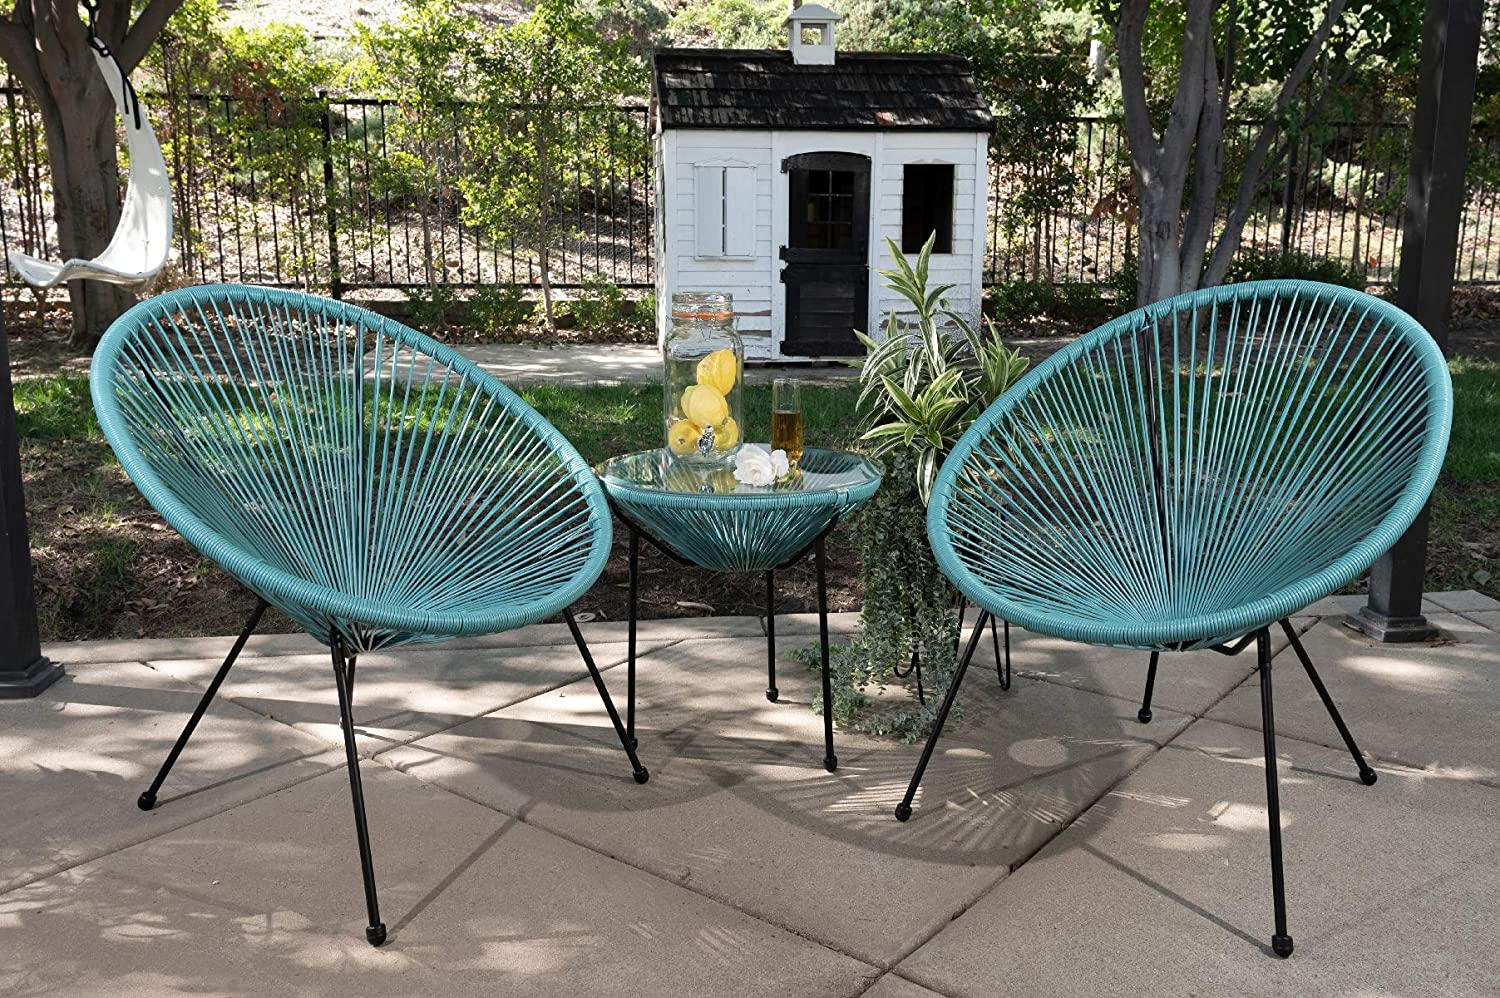 Barton 3-Piece Outdoor Acapulco All-Weather Patio Conversation Bistro Set Glass Top Table and 2 Chairs, Aqua